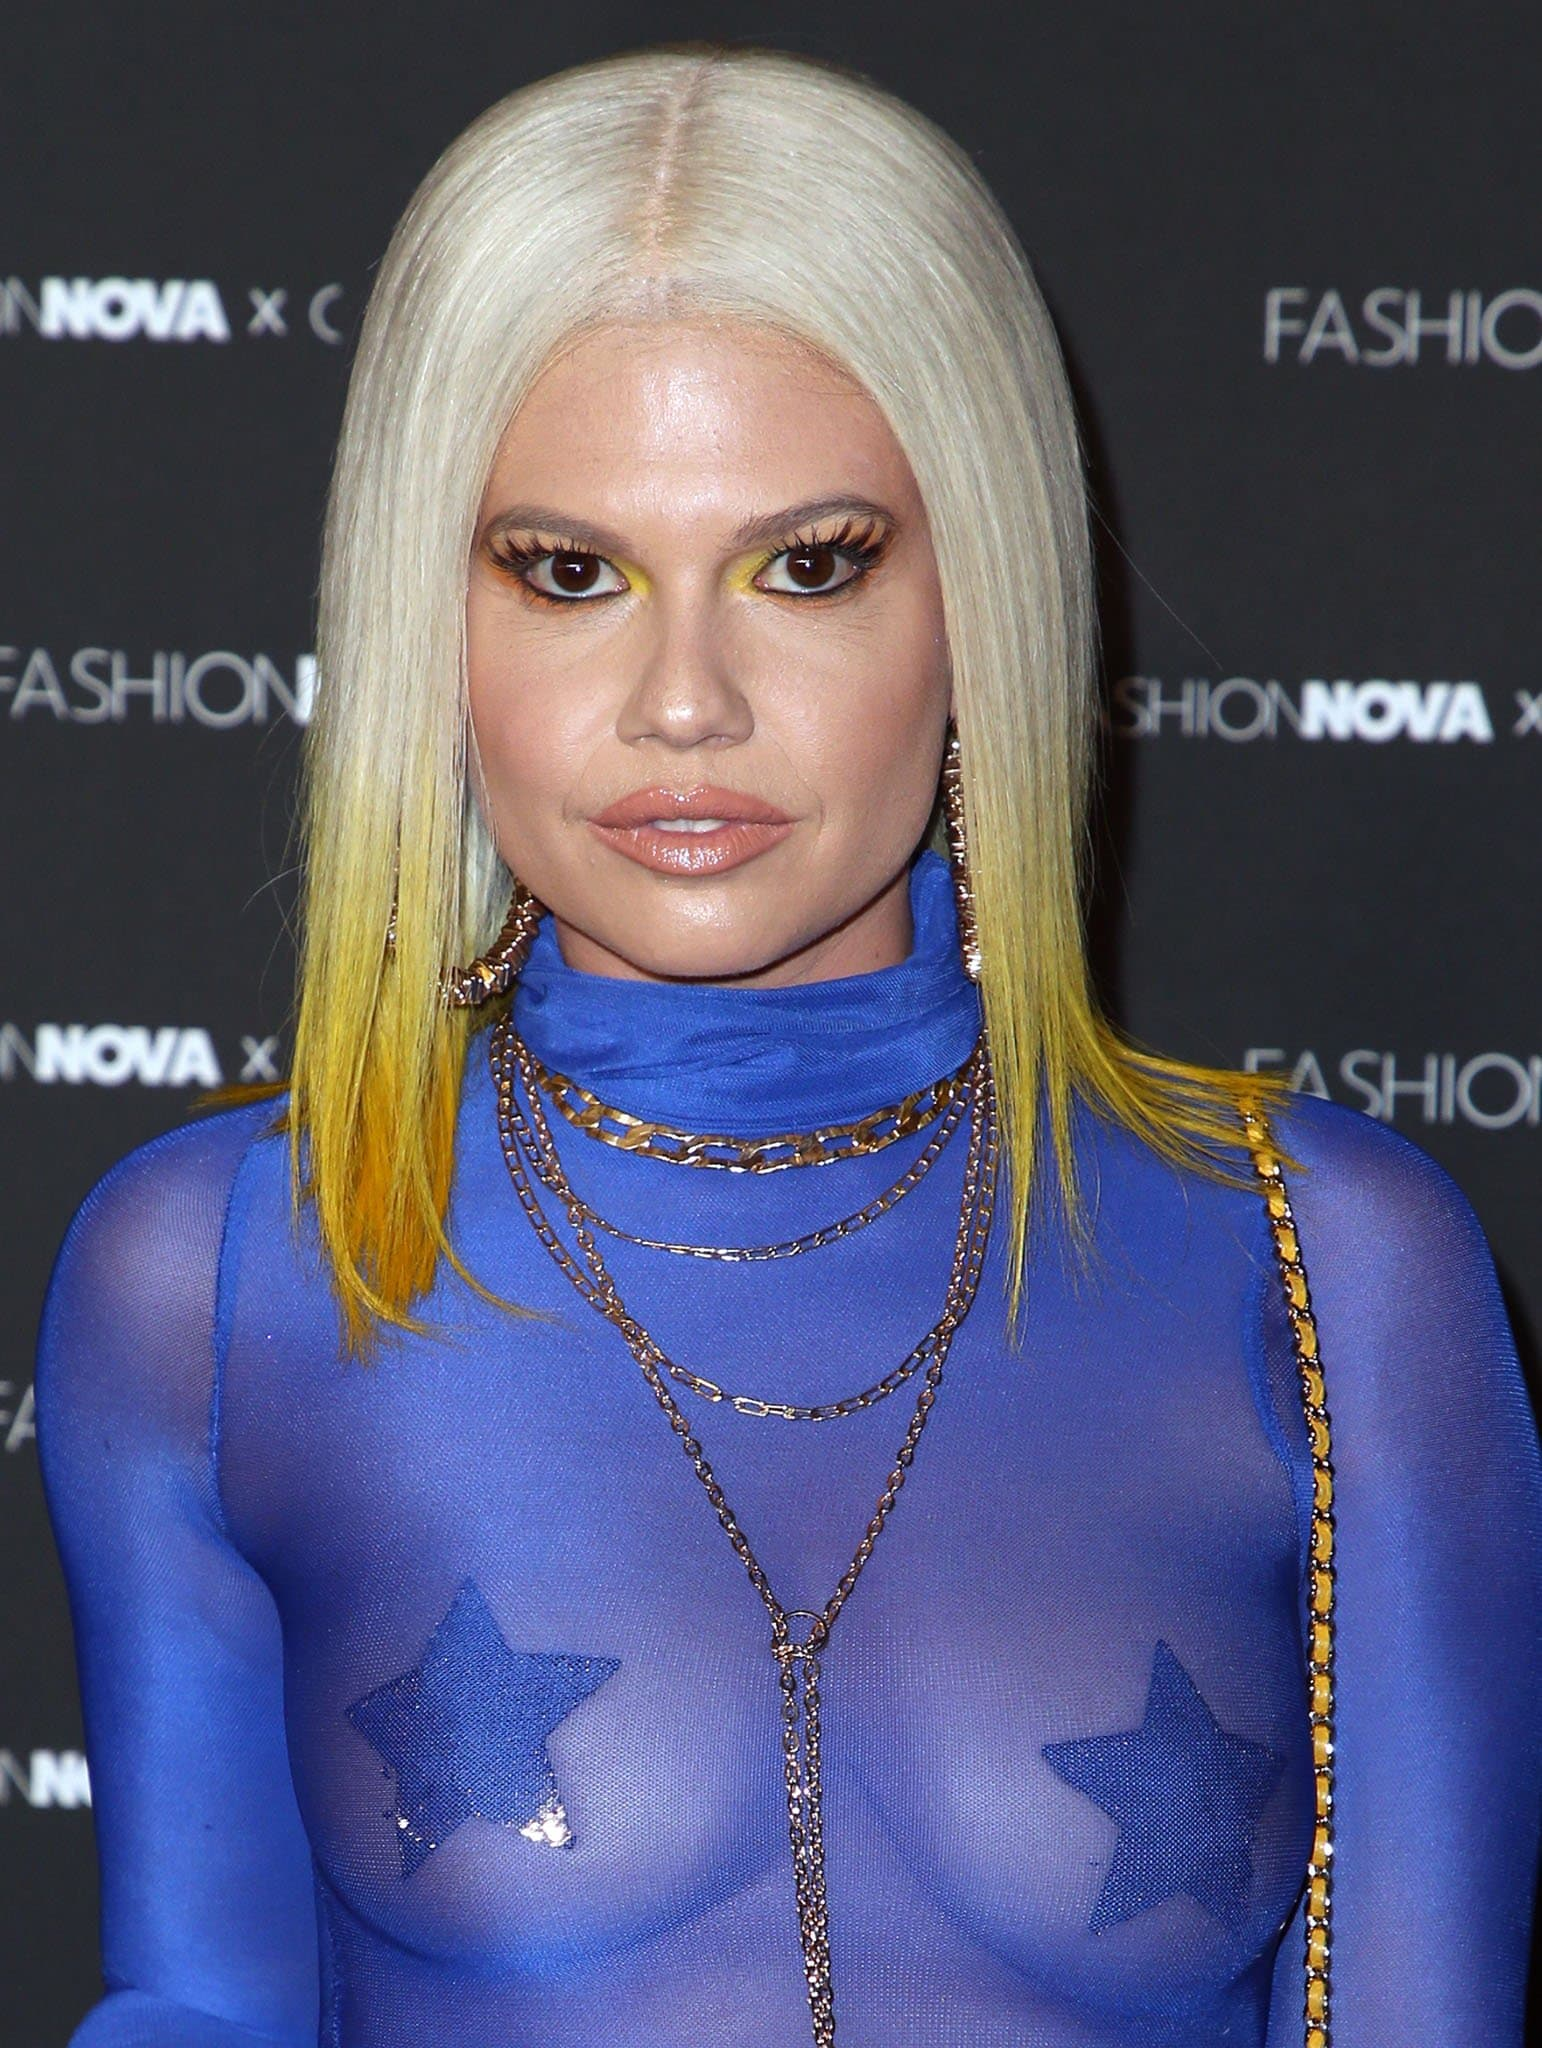 Chanel West Coast pictured at Fashion Nova x Cardi B Collection Launch Party on May 9, 2019